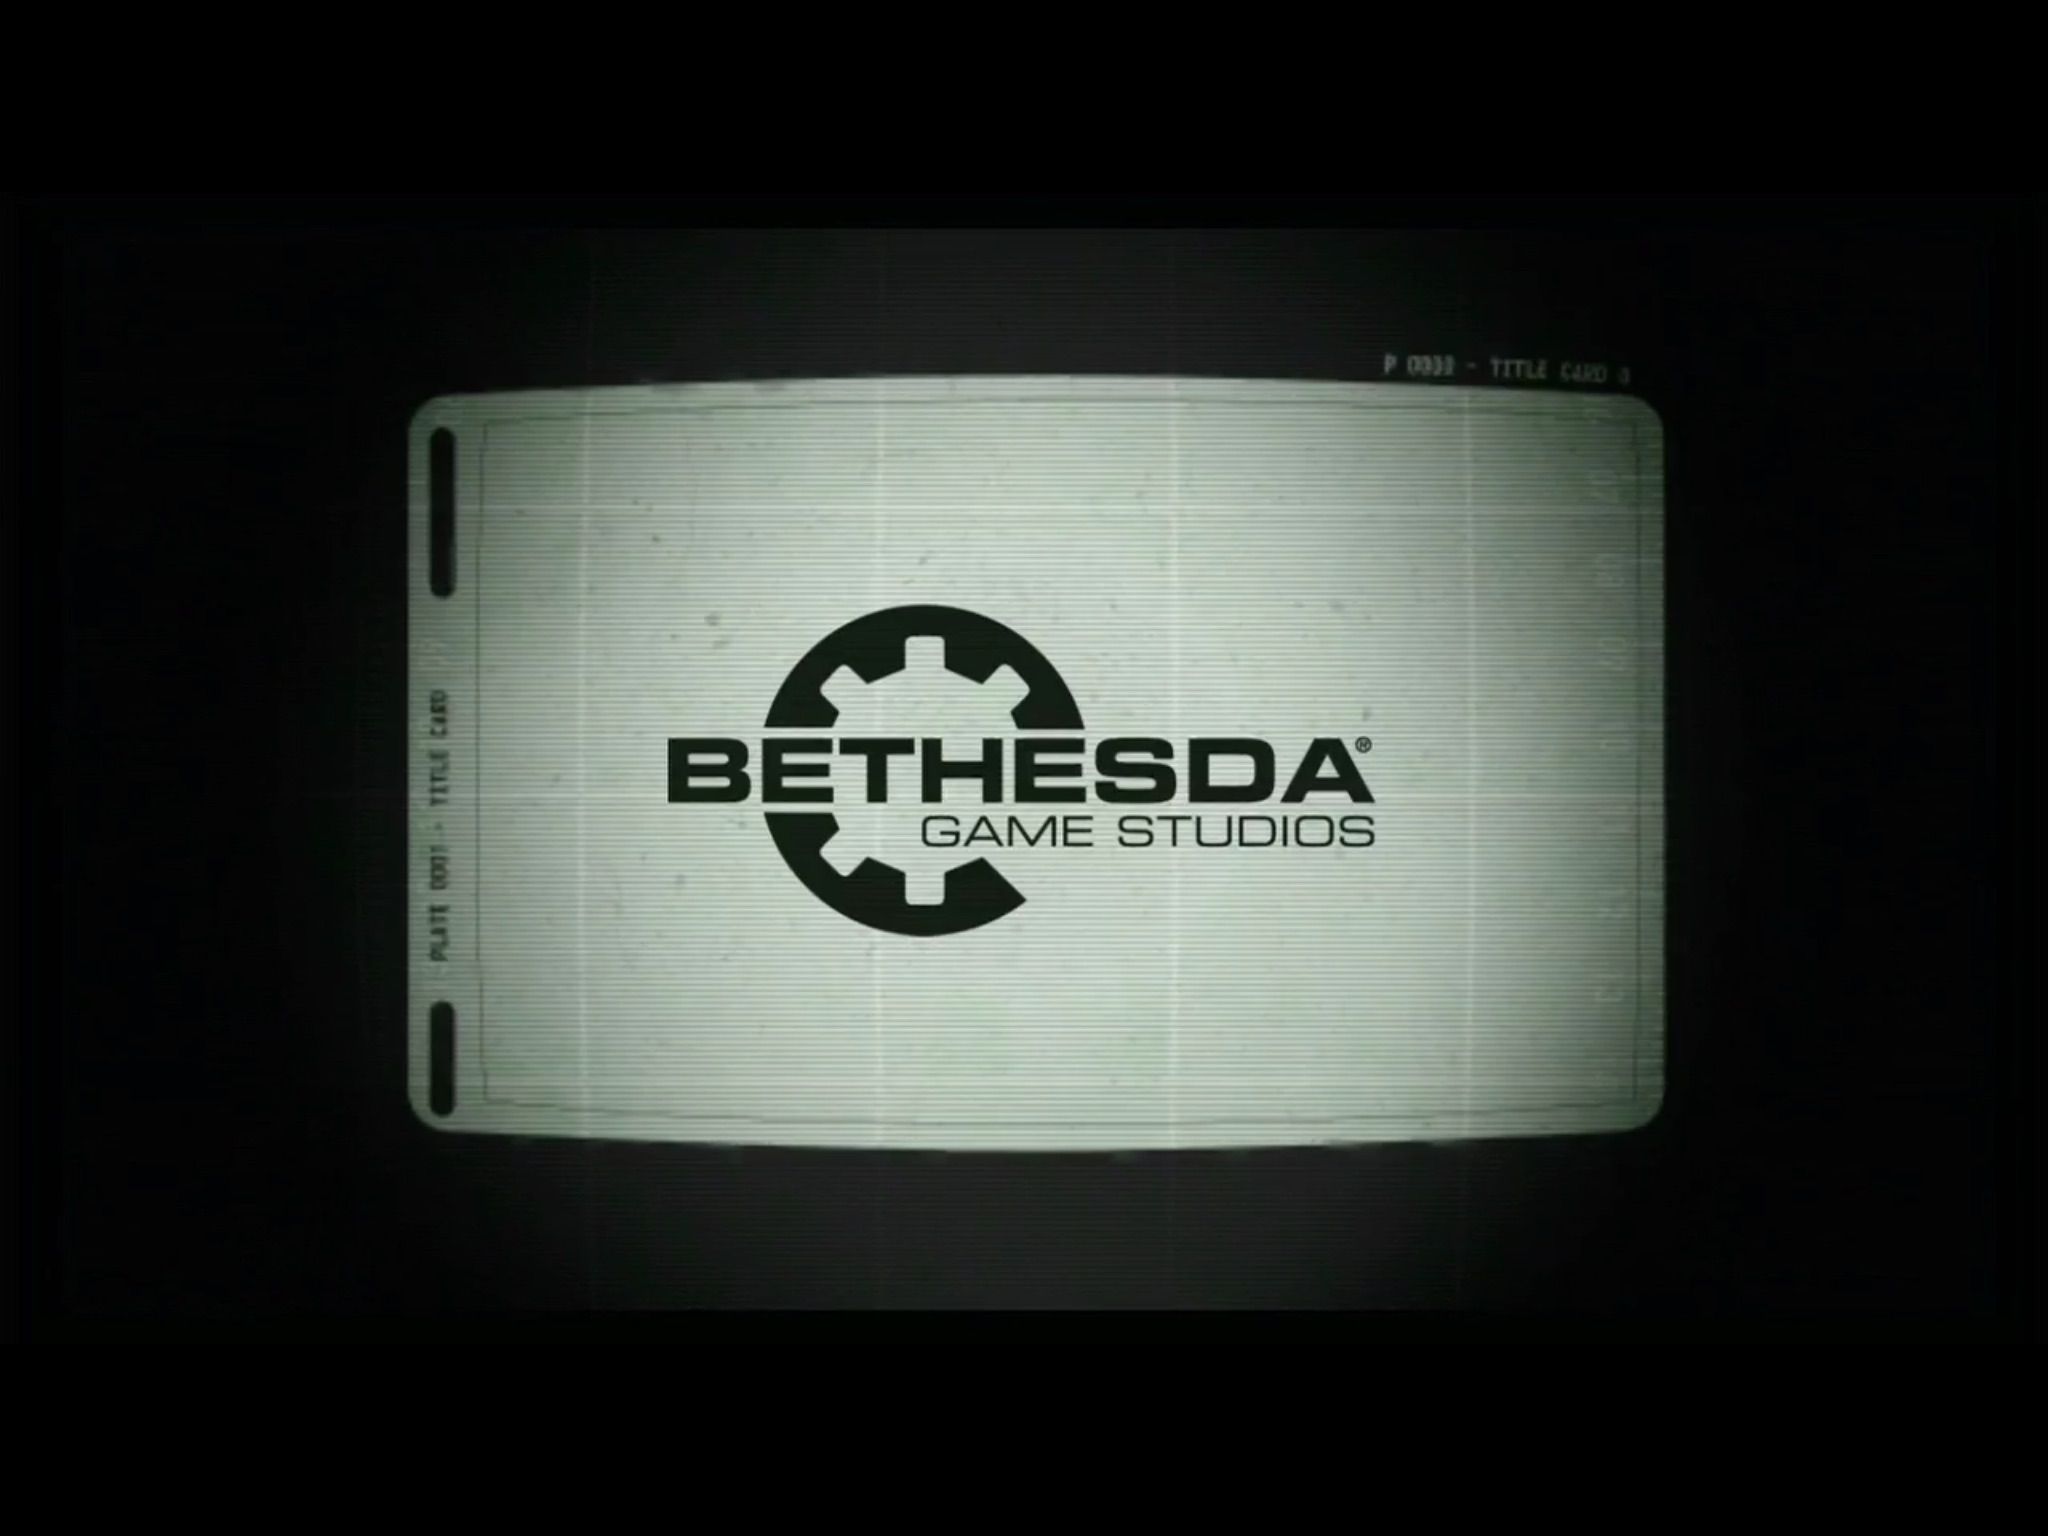 E3 2015: Bethesda Conference – Fallout 4, DOOM, Dishonored 2